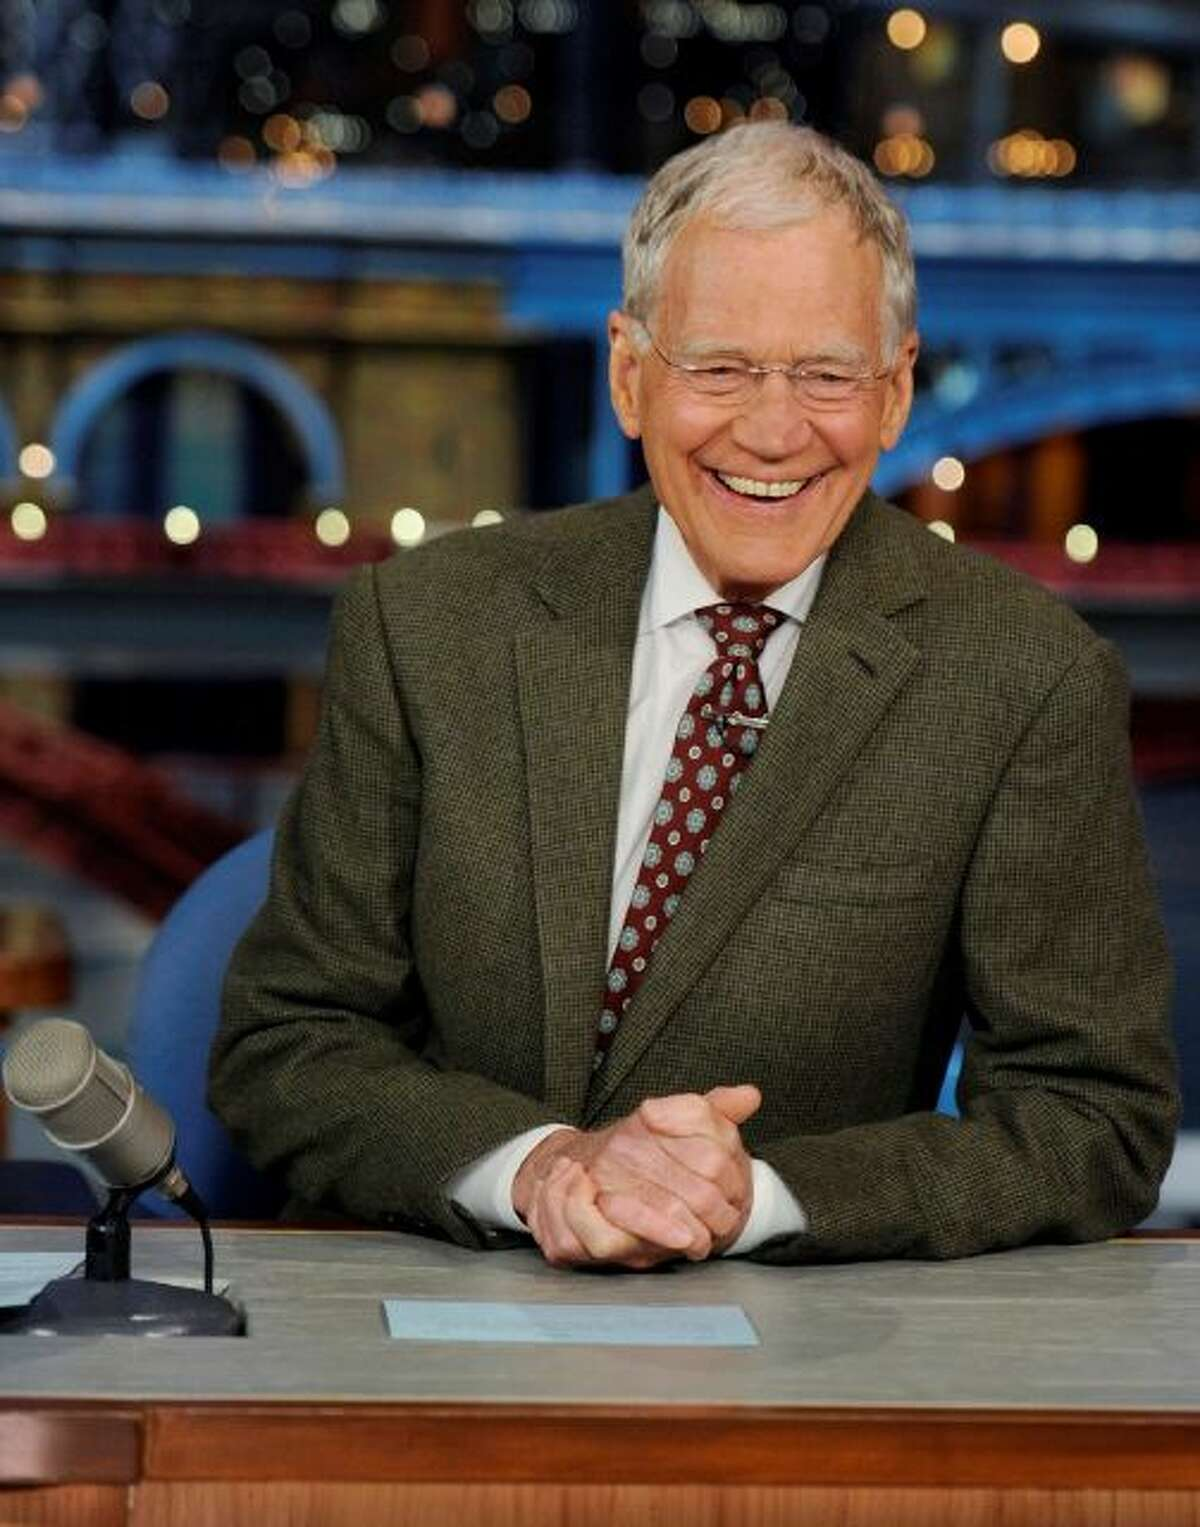 In this photo provided by CBS, David Letterman, host of the Late Show with David Letterman, smiles while seated at his desk in New York on Thursday, April 3, 2014. Letterman announced his retirement during Thursdays taping. Although no specific date was announced he told the audience that he will leave his desk sometime in 2015. (AP Photo/CBS, Jeffrey R. Staab) MANDATORY CREDIT, NO SALES, NO ARCHIVE, FOR NORTH AMERICAN USE ONLY